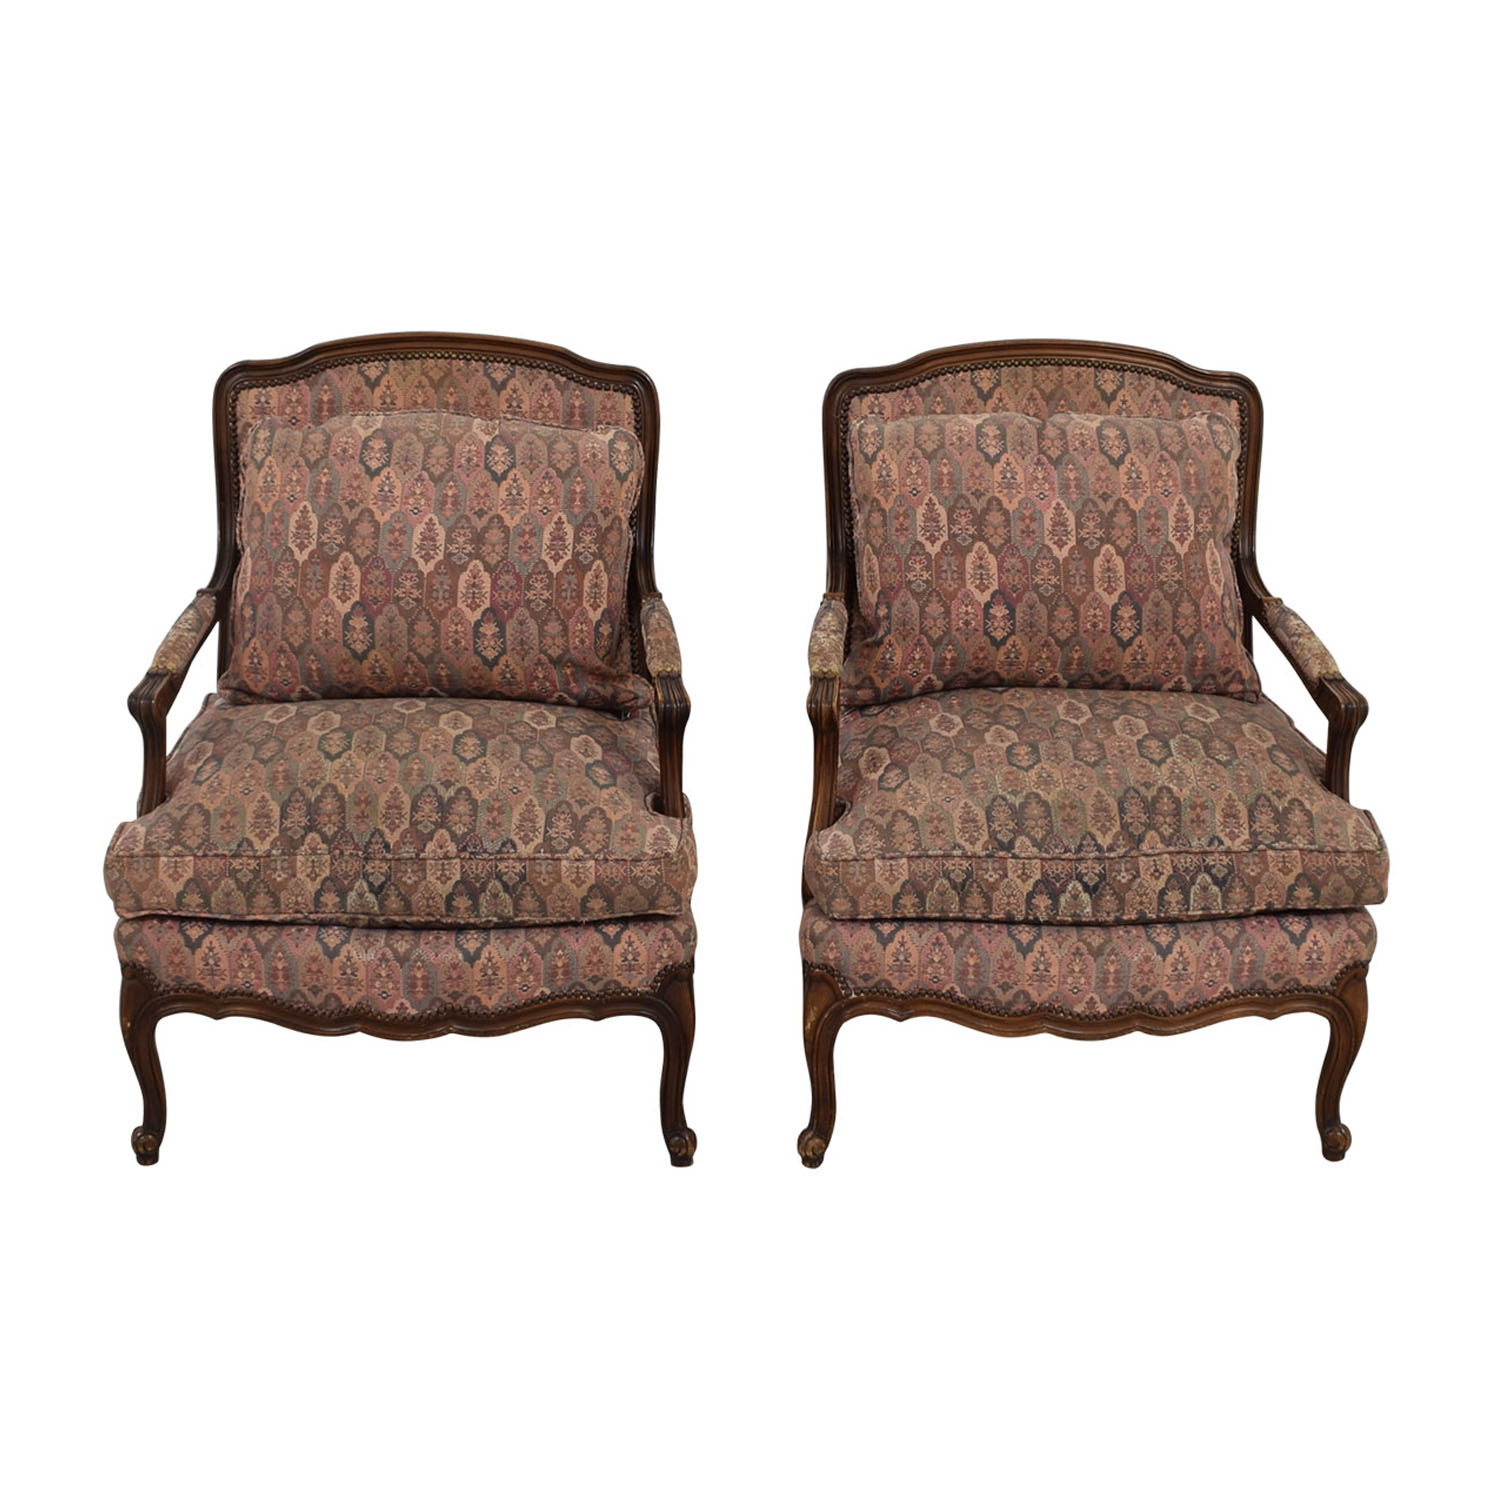 arm chairs for sale lawn chair repair 85 off trs furniture low wing back